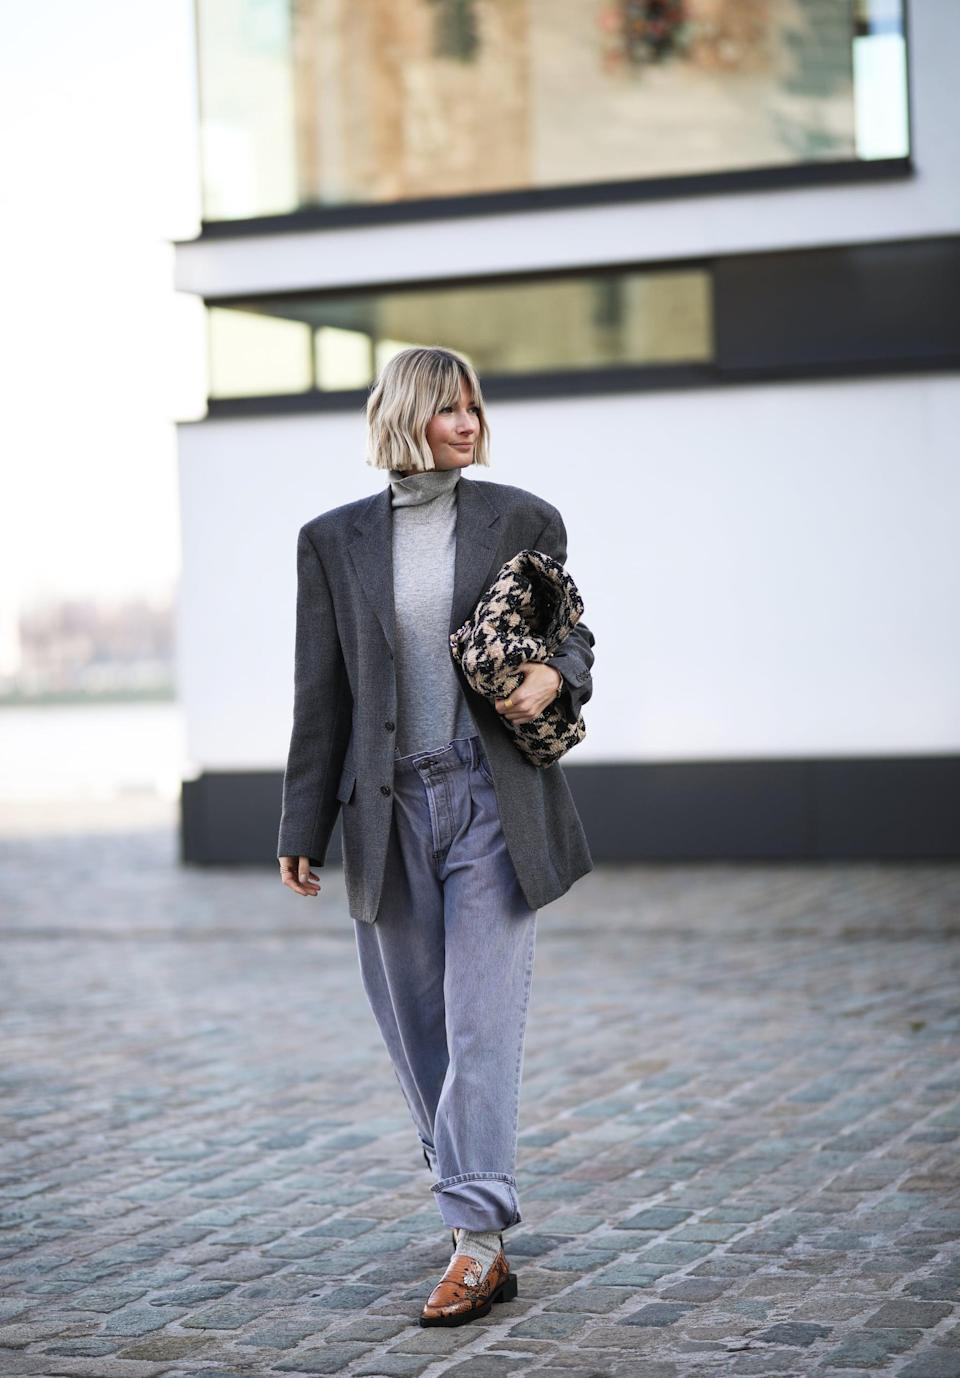 <p>Give baggy jeans a professional look by pairing them with a structured blazer and loafers.</p>